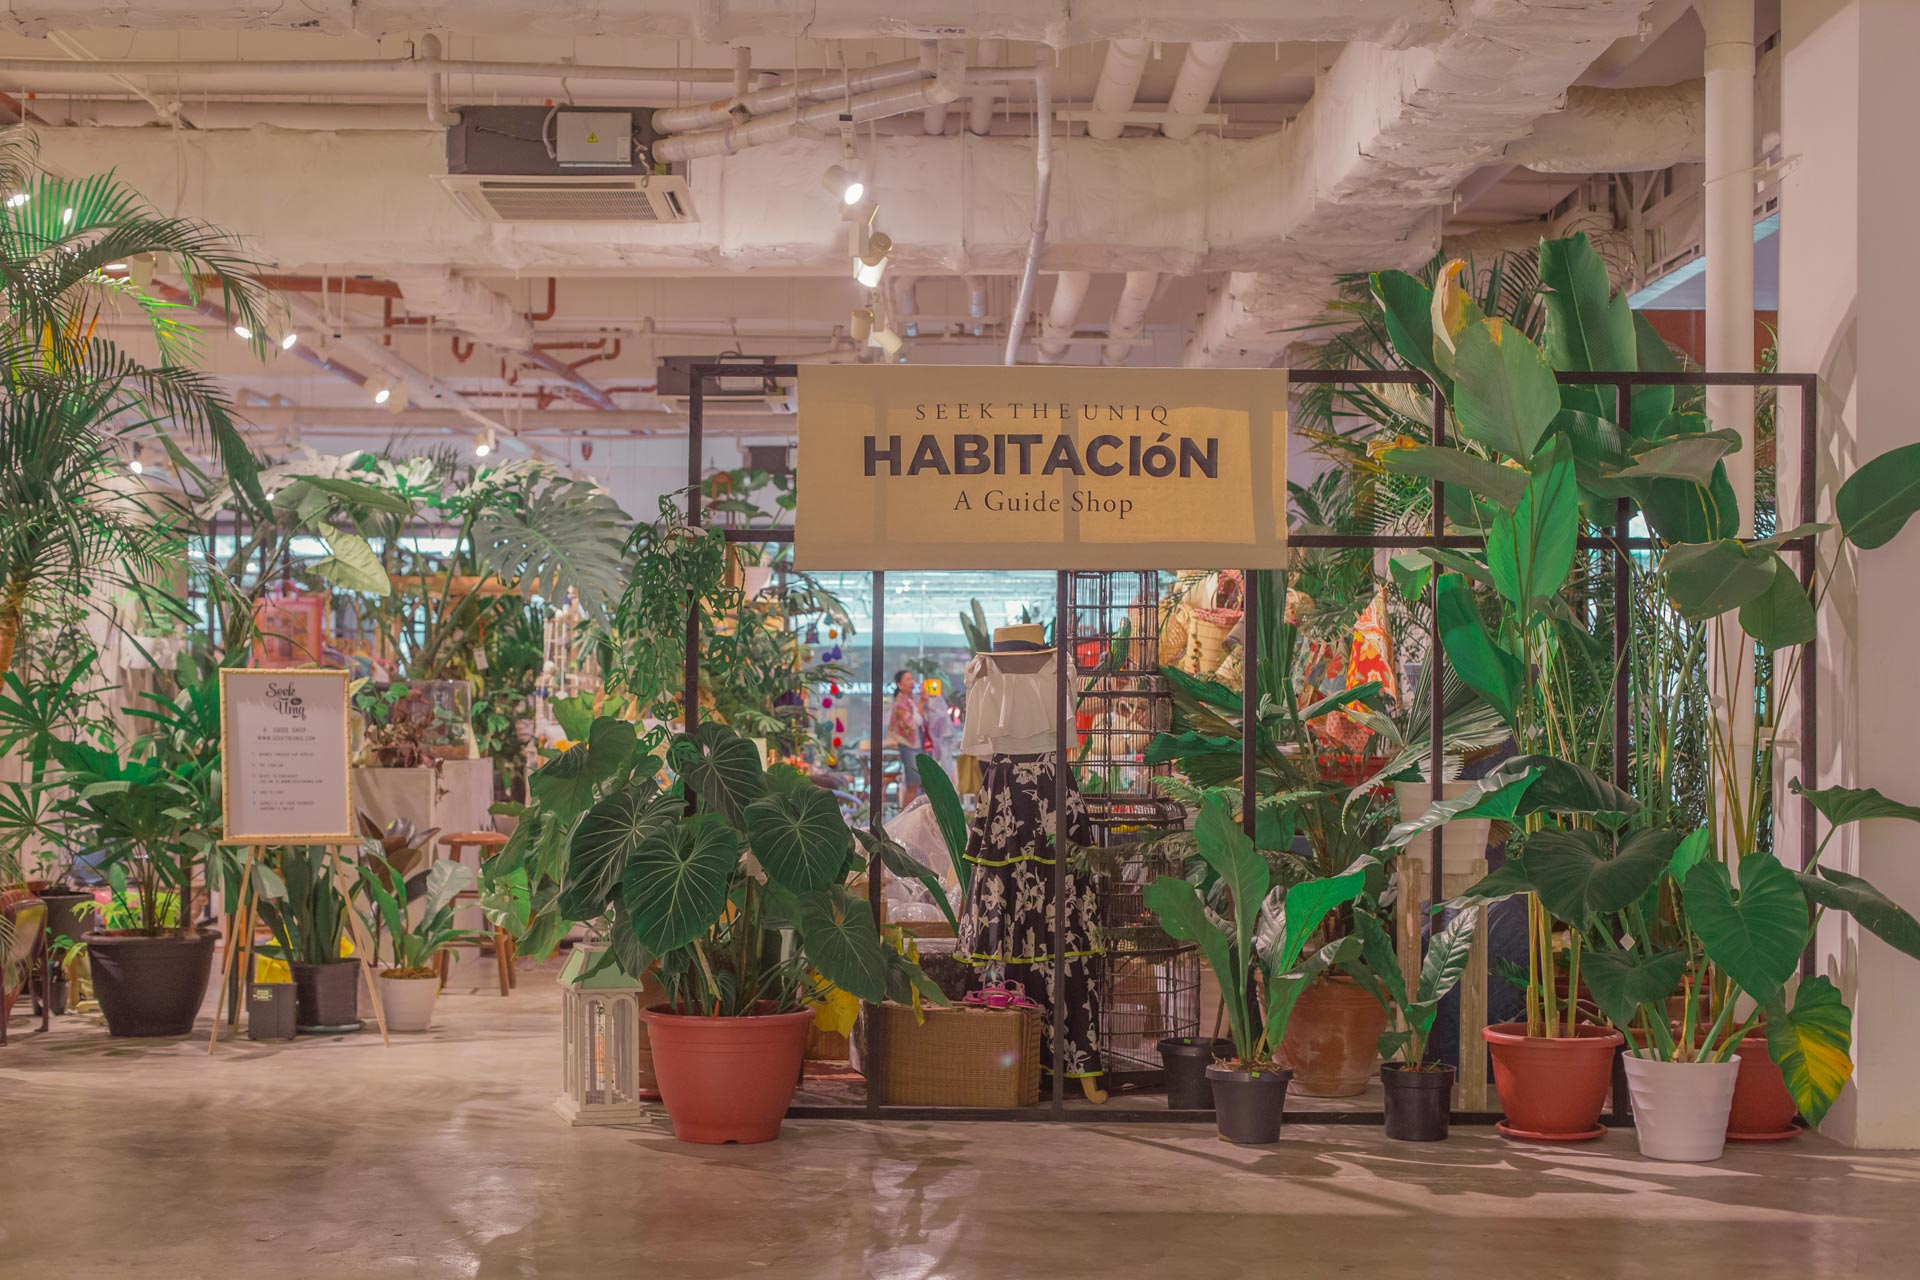 Habitación, A Guide Shop by Seek the Uniq, Powerplant Mall (Space design by Kitty Bunag of CRAFTSMITH GUILD Team)